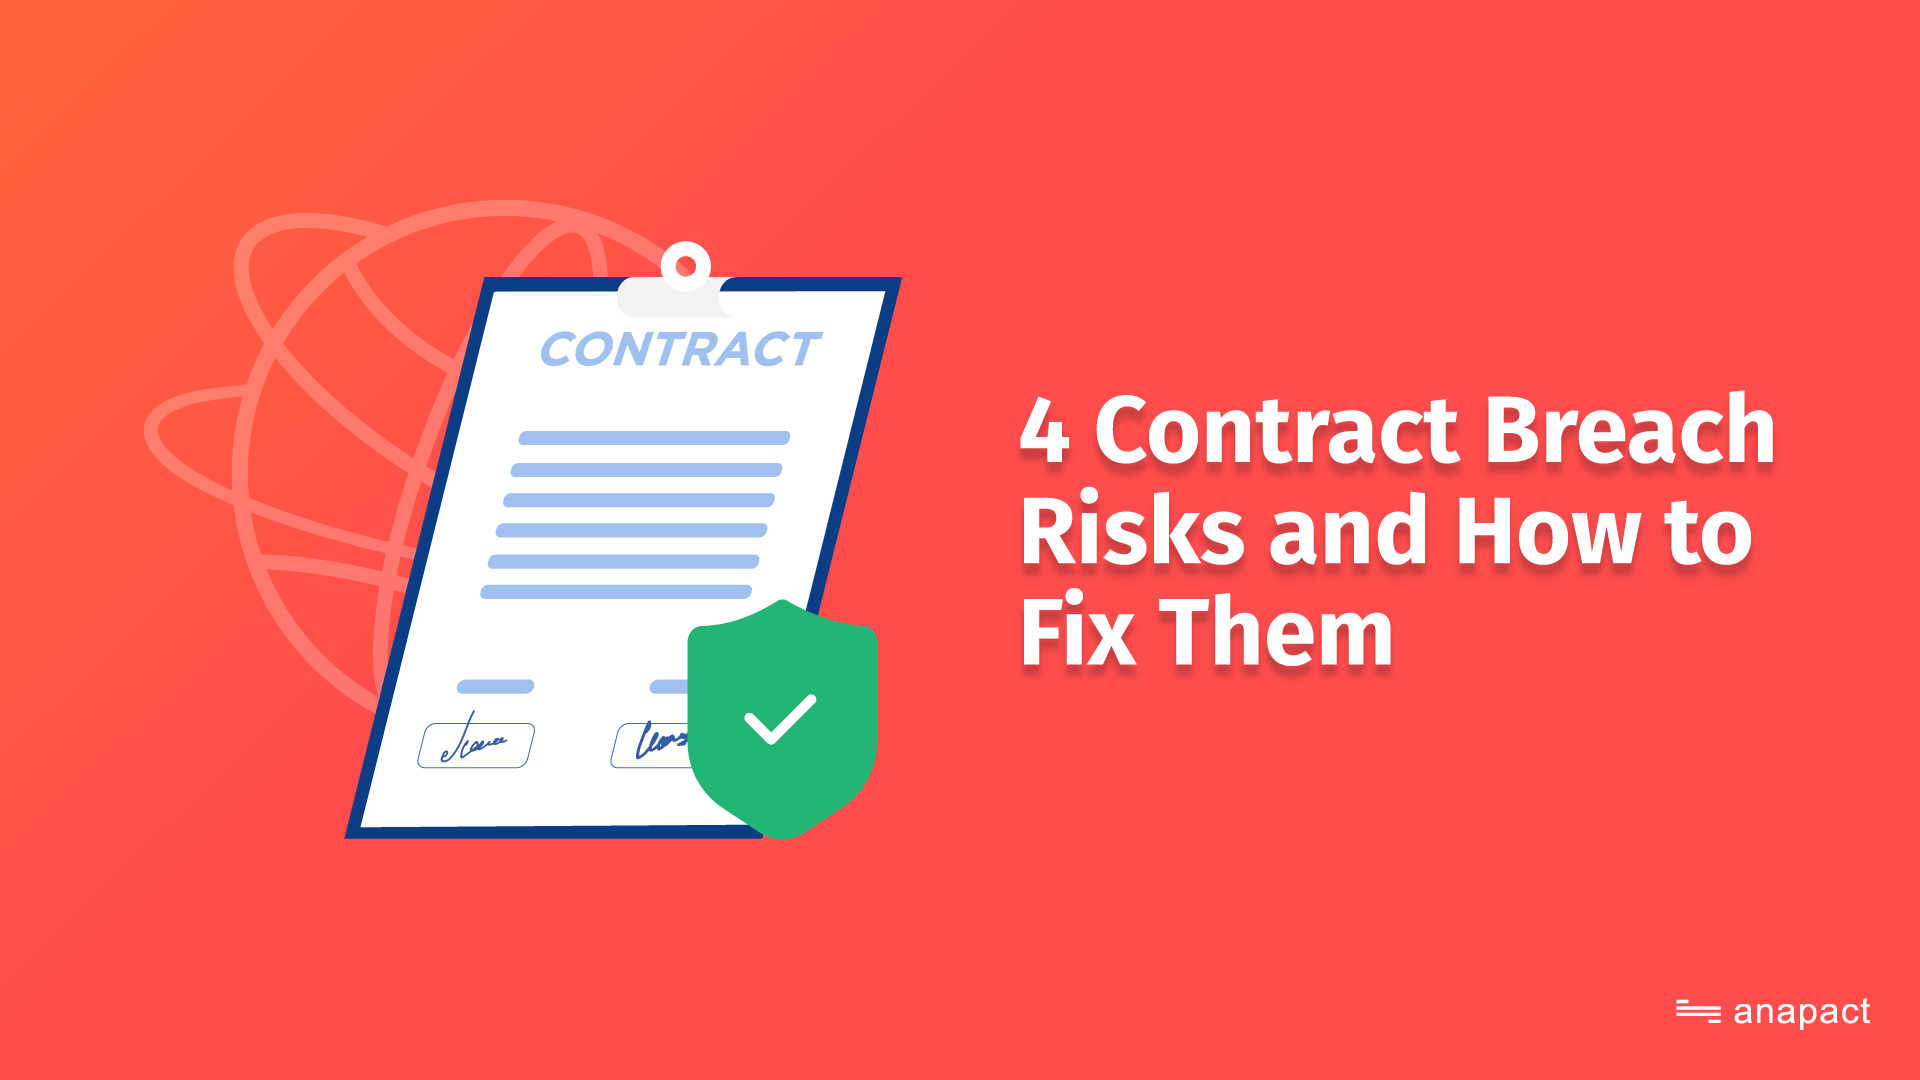 4 Contract Breach for Small Business Risks and How to Fix Them